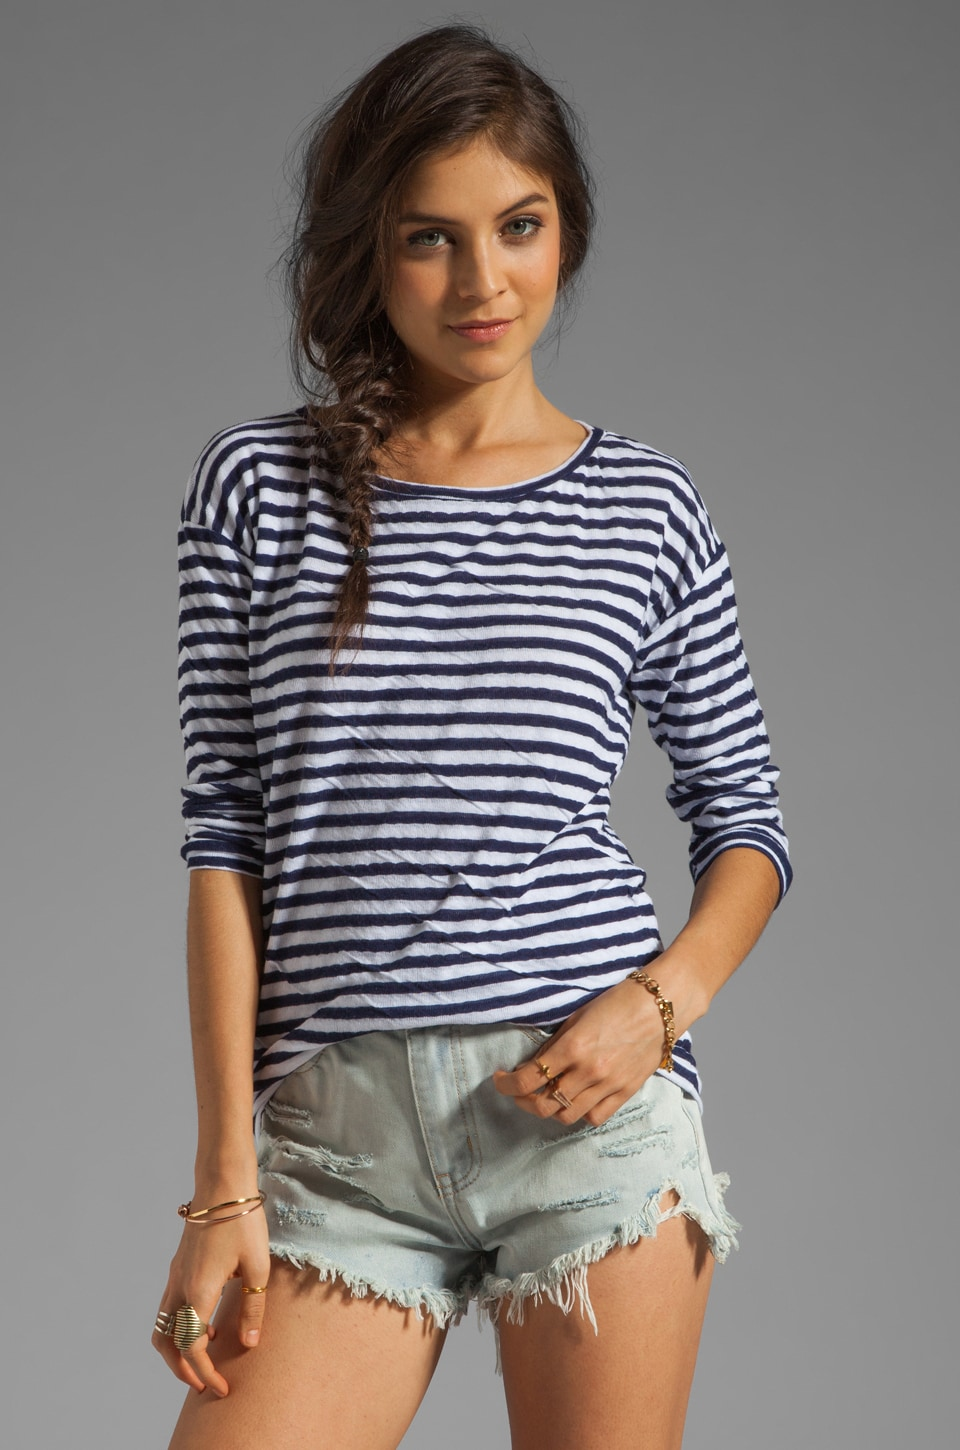 Velvet by Graham & Spencer x Lily Aldridge Pearl Stripe Sweater in Navy/White